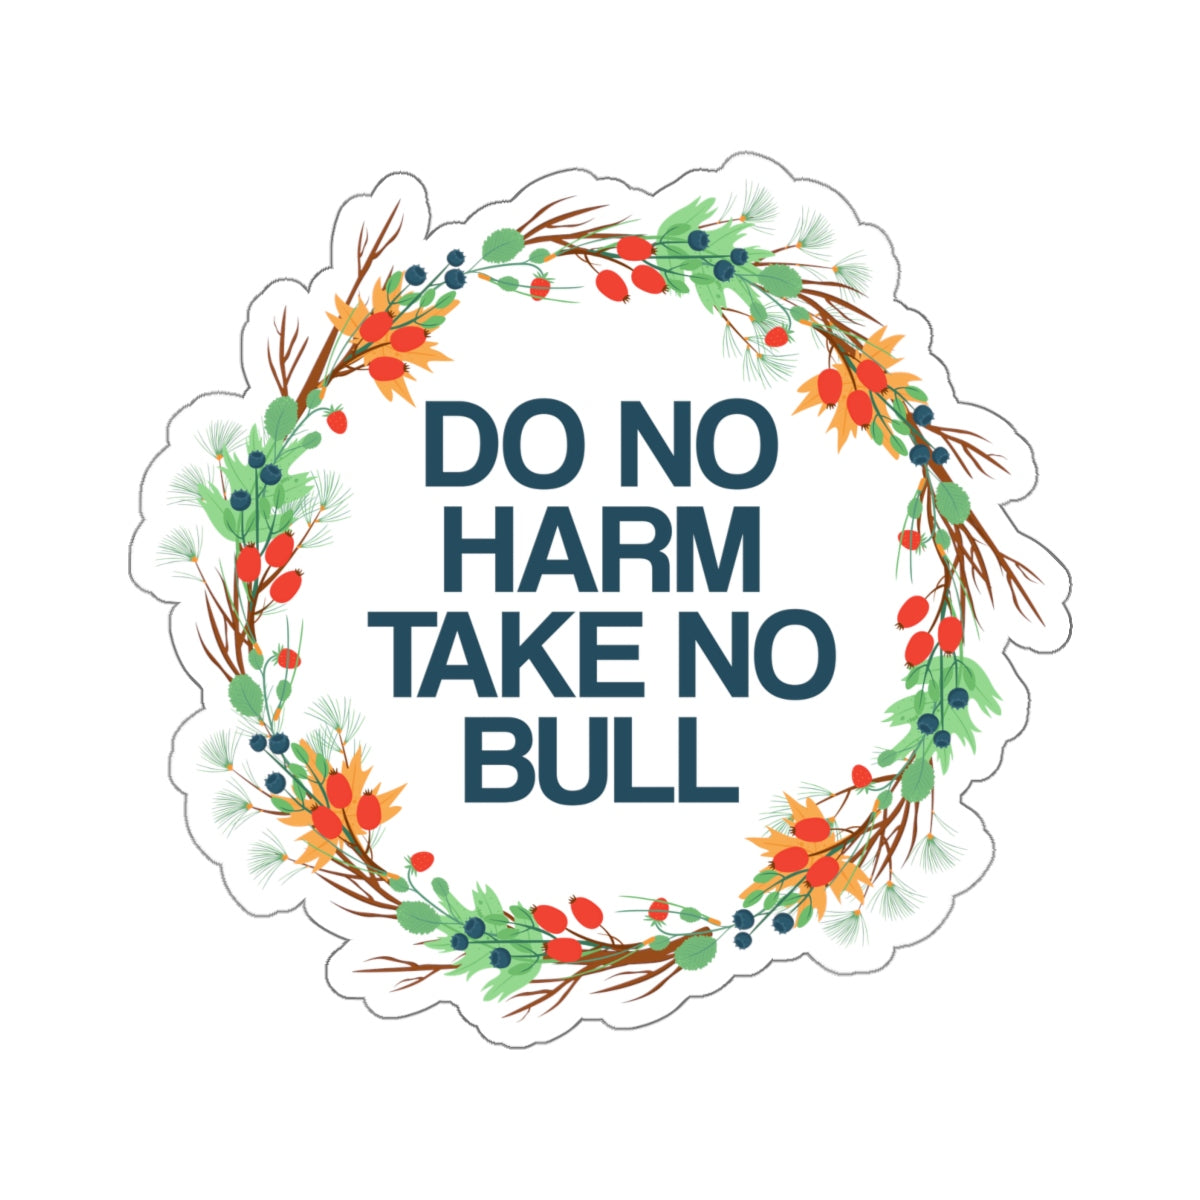 Do No Harm Take No Bull Decal, Stickers Laptop Vinyl Waterproof Waterbottle Tumbler Car Bumper Aesthetic Label Wall Phone Mural - Starcove Design